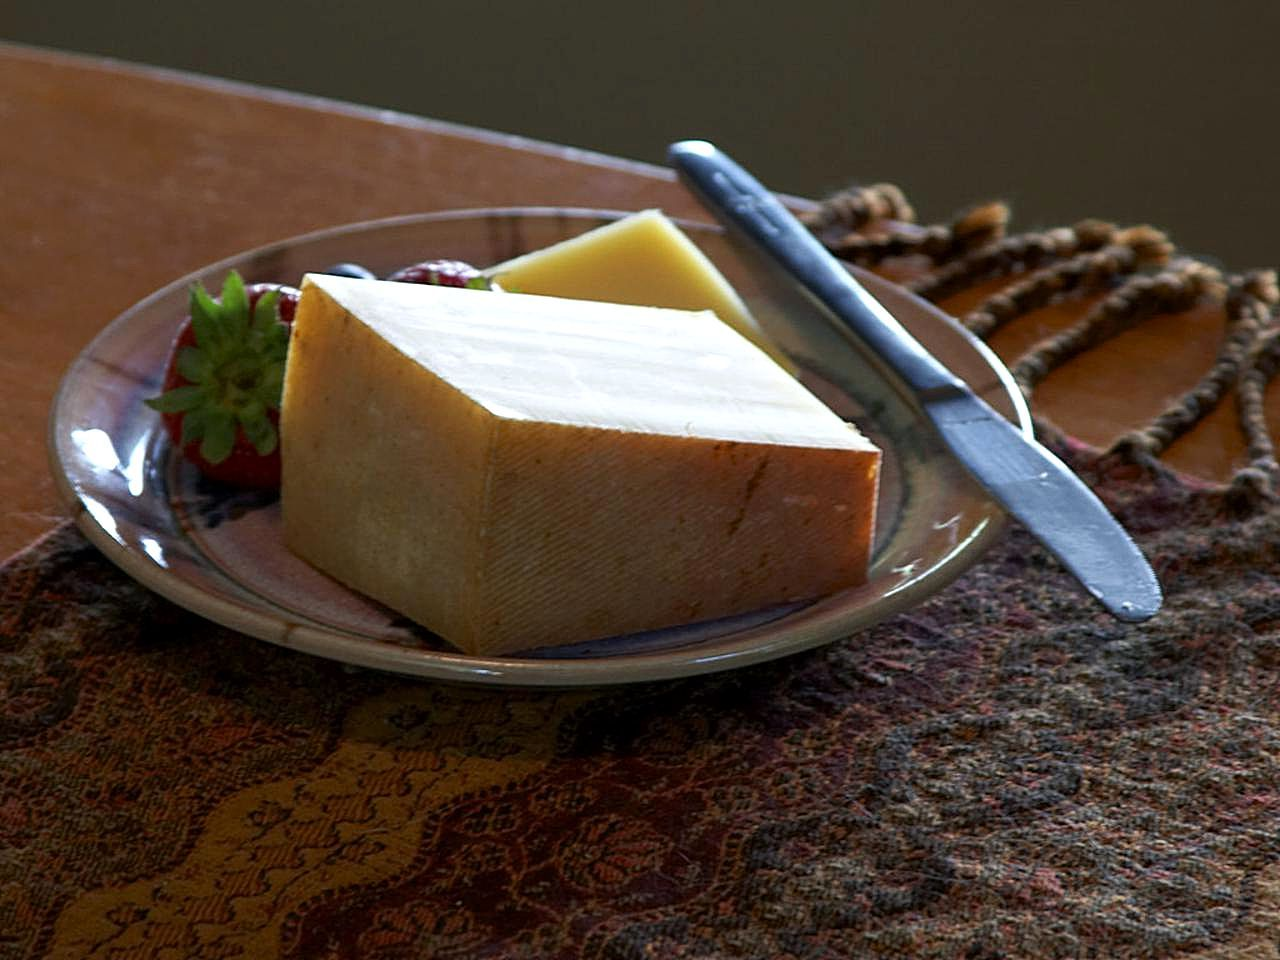 cheese_and_strawberry_on_palte_still_life_photo-1